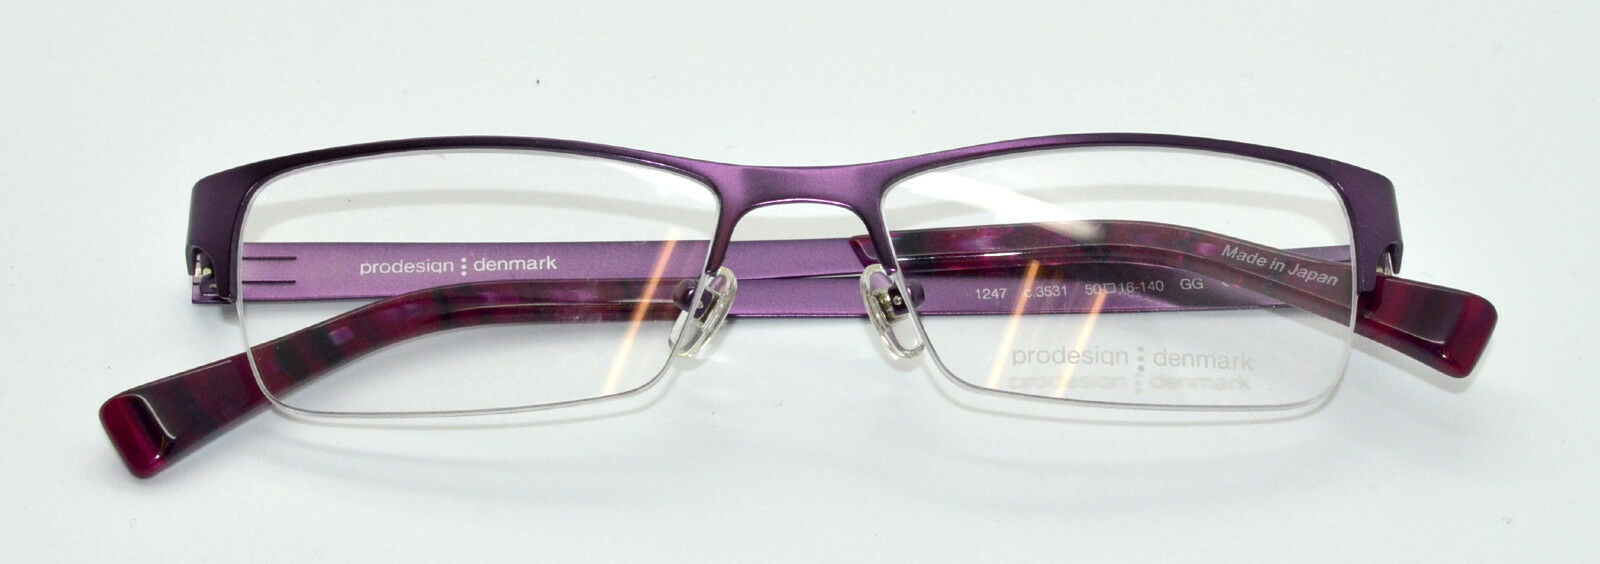 a261ec62cc9 100 Authentic PRODESIGN Denmark 1247 C.3531 Purple Eyeglasses Frames for  sale online